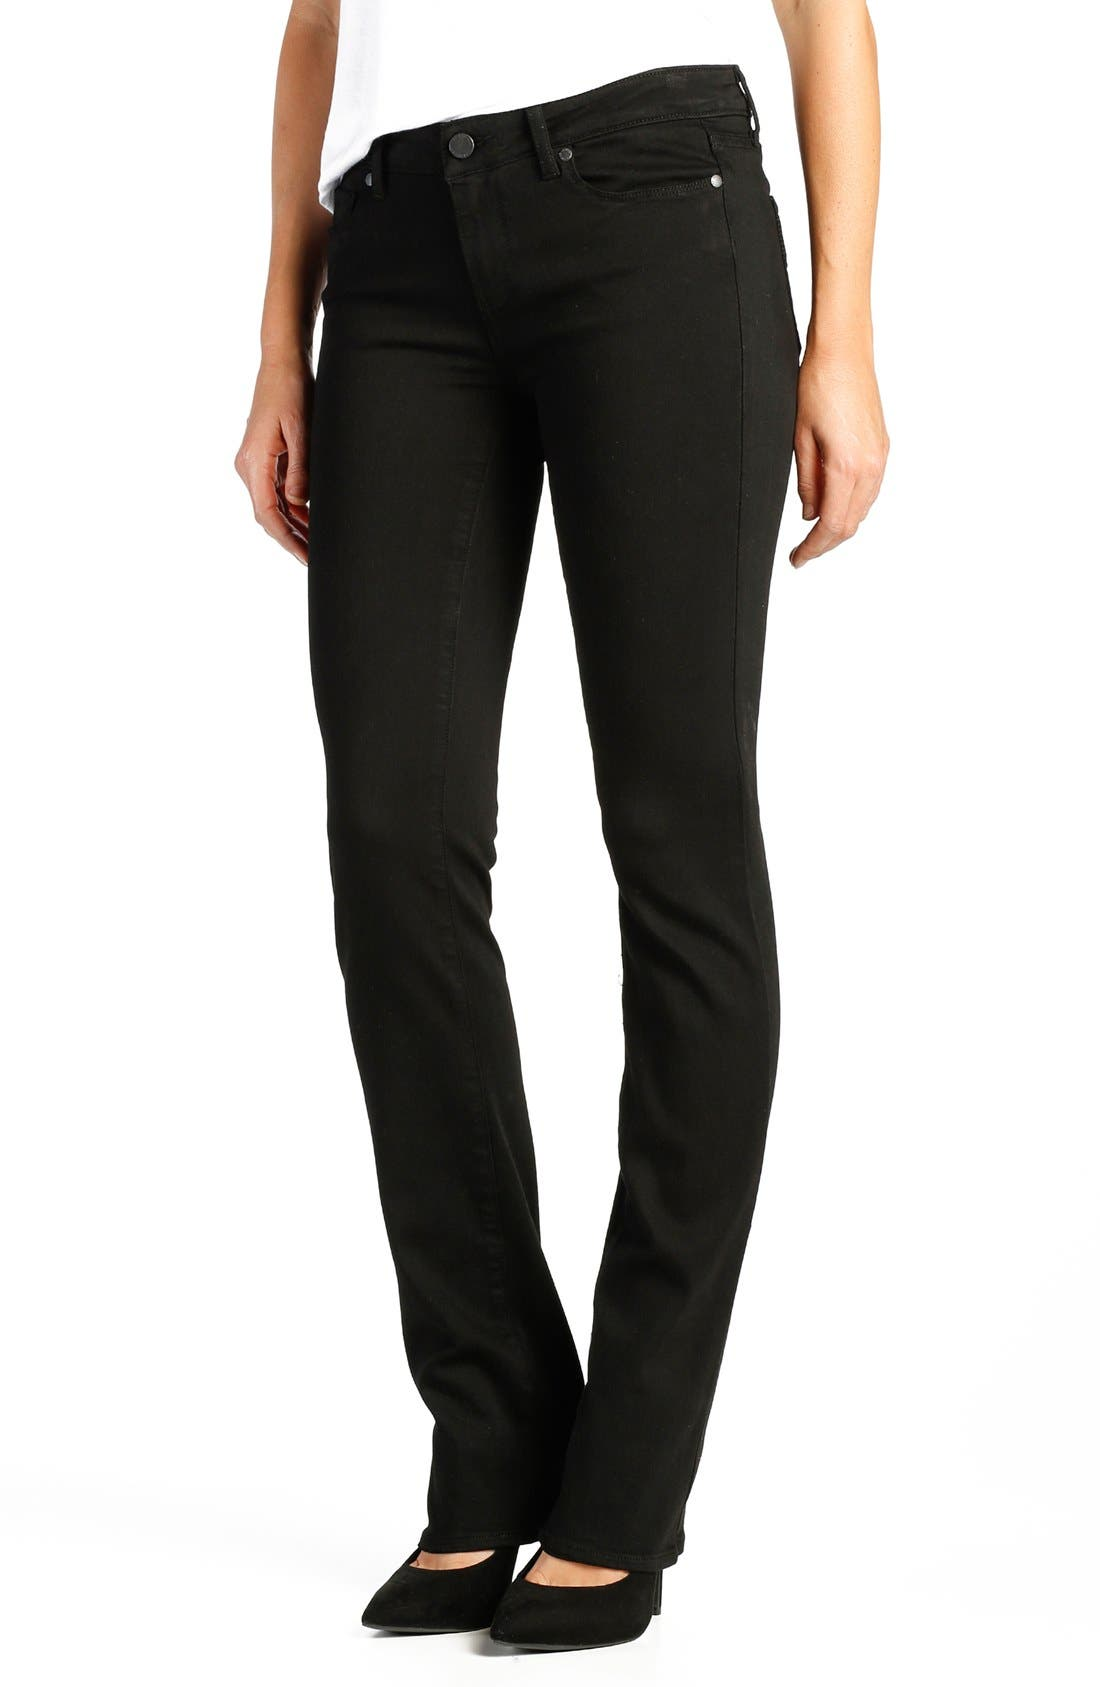 Alternate Image 1 Selected - PAIGE 'Transcend - Skyline' Straight Leg Jeans (Black Shadow)